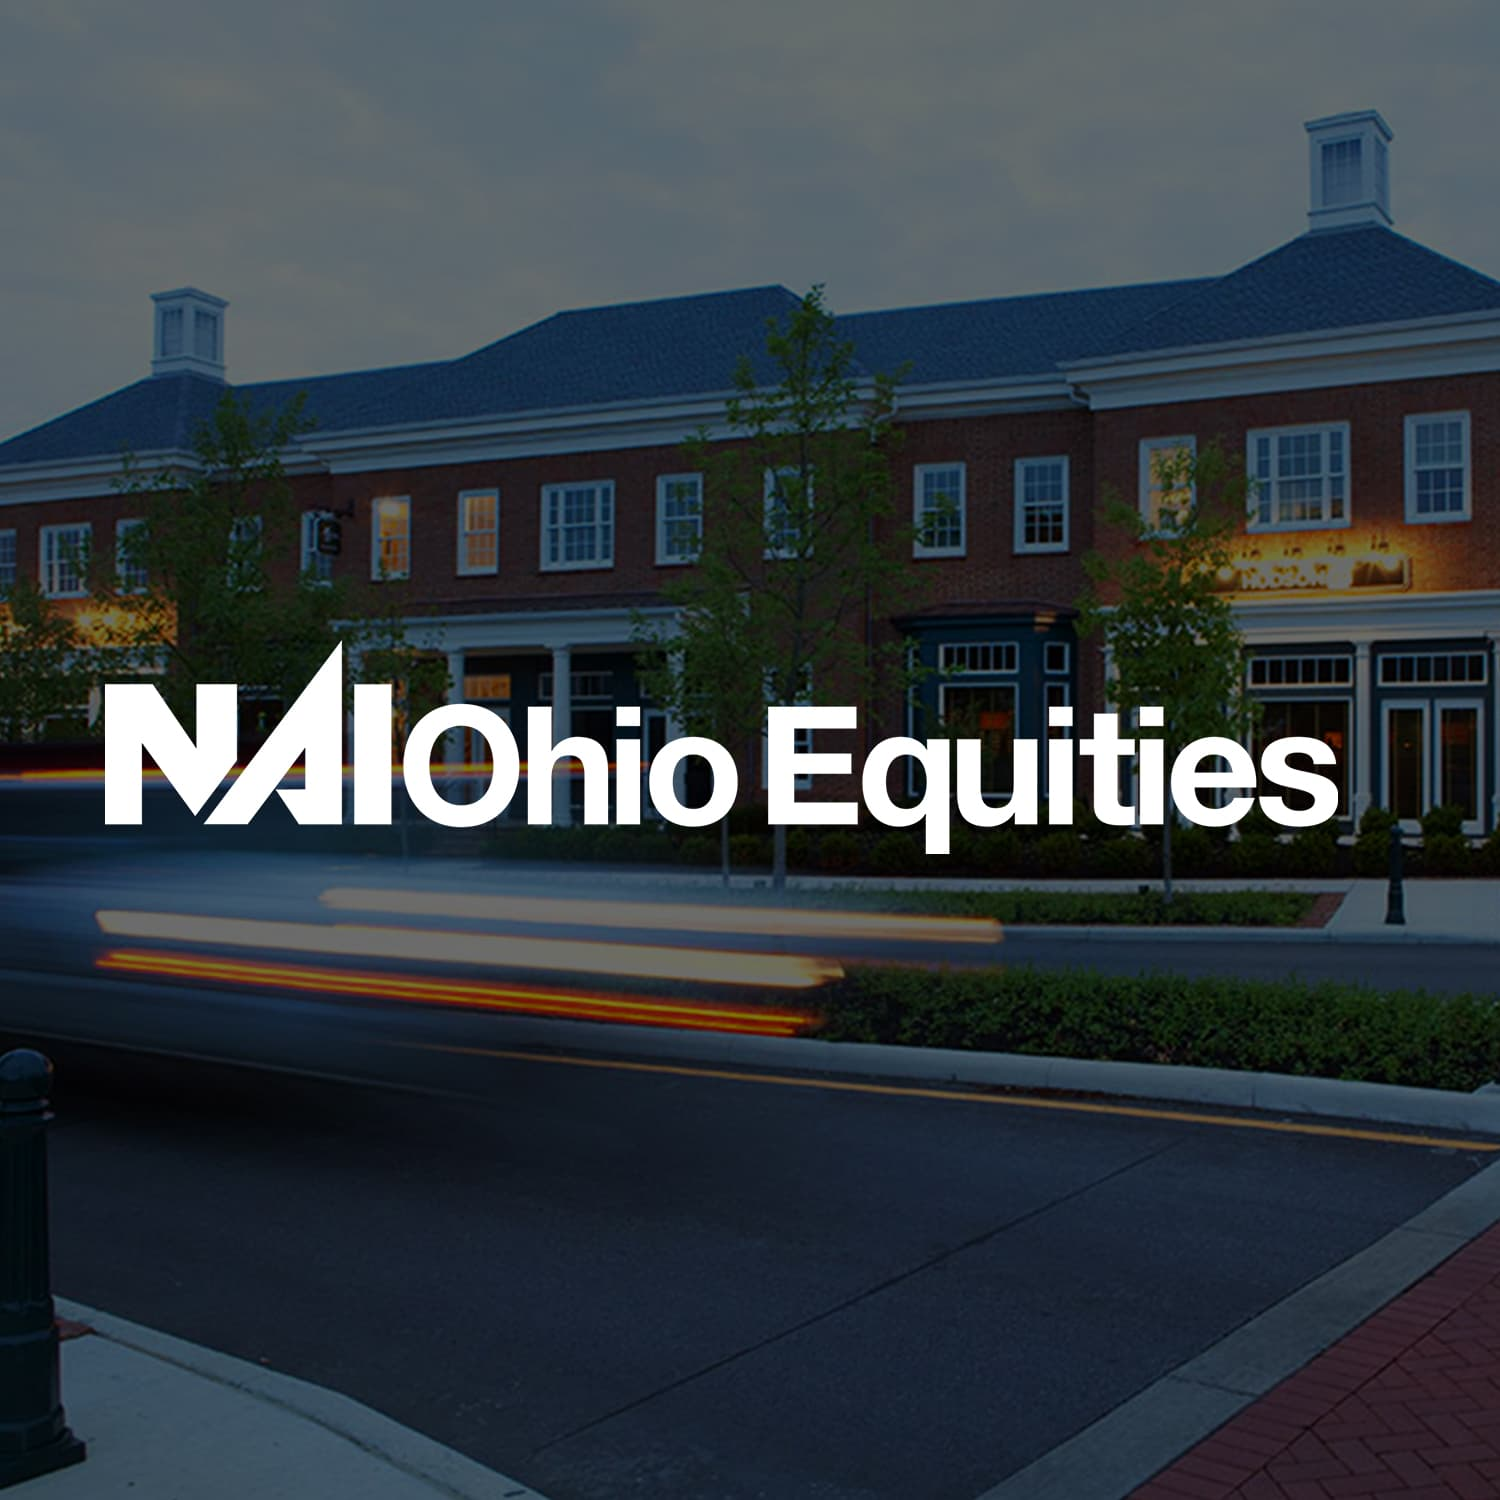 Ohio Equities.jpg